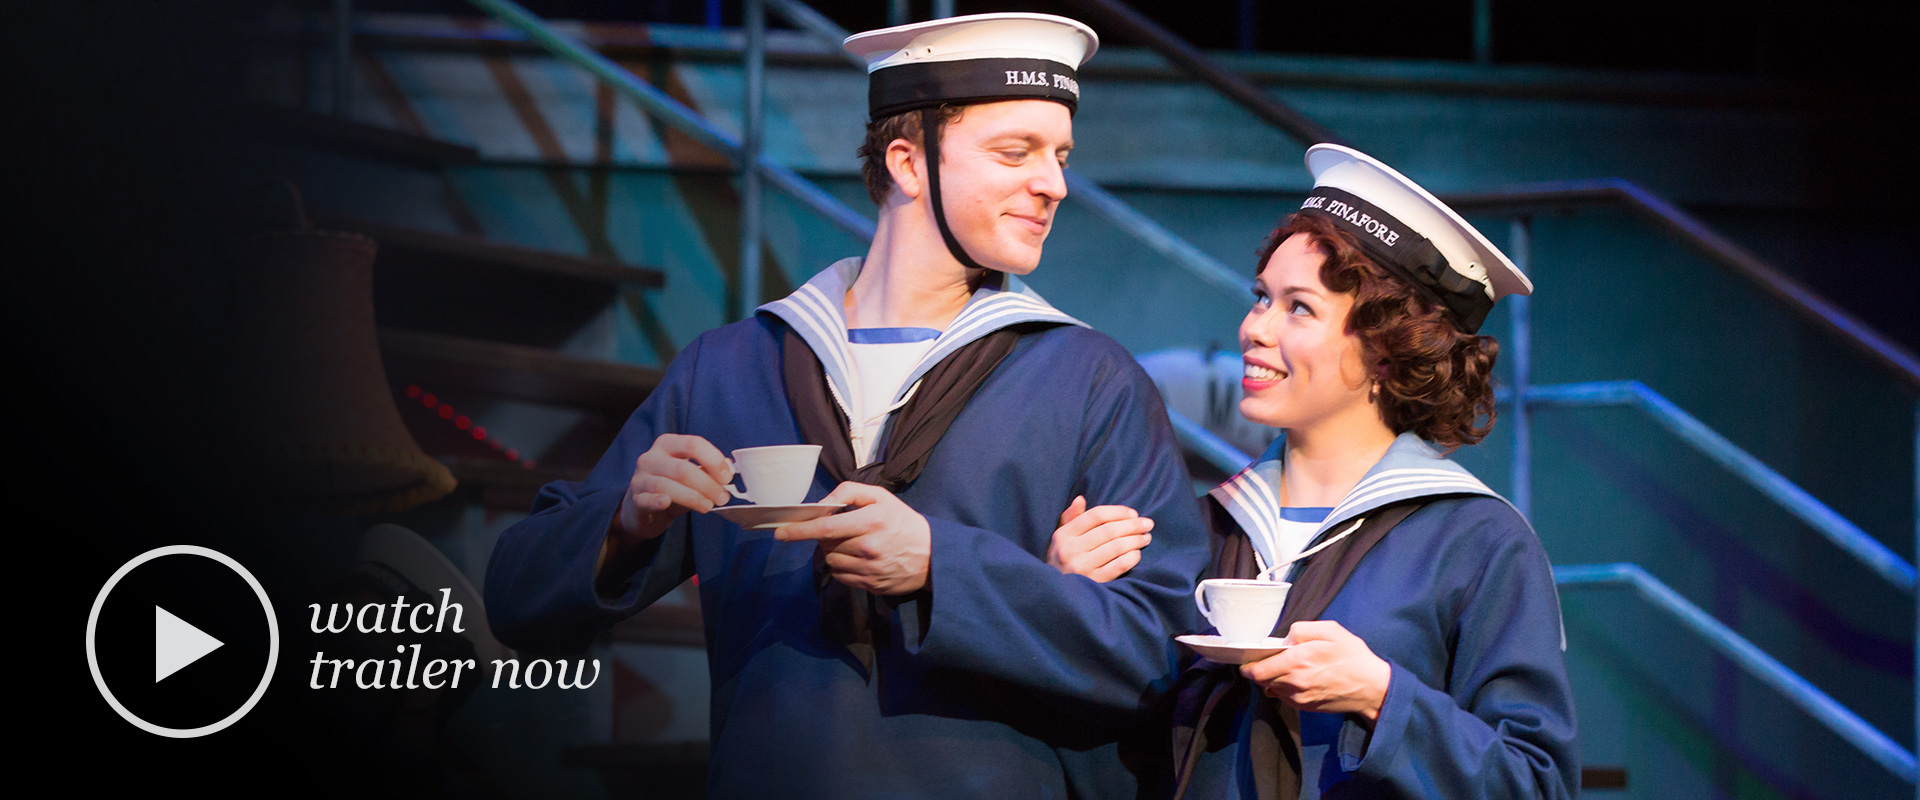 production image from HMS Pinafore featuring Jennifer Rider-Shaw and Mark Uhre